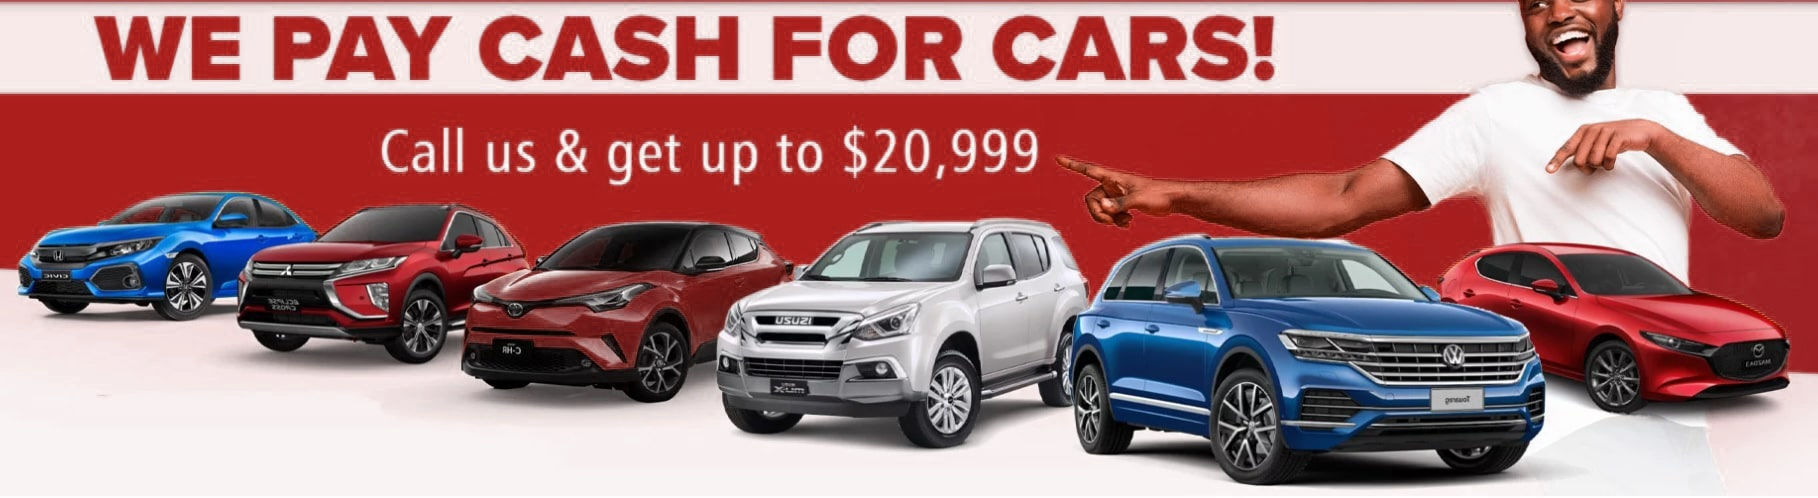 Cash for Cars Fingal, Victoria